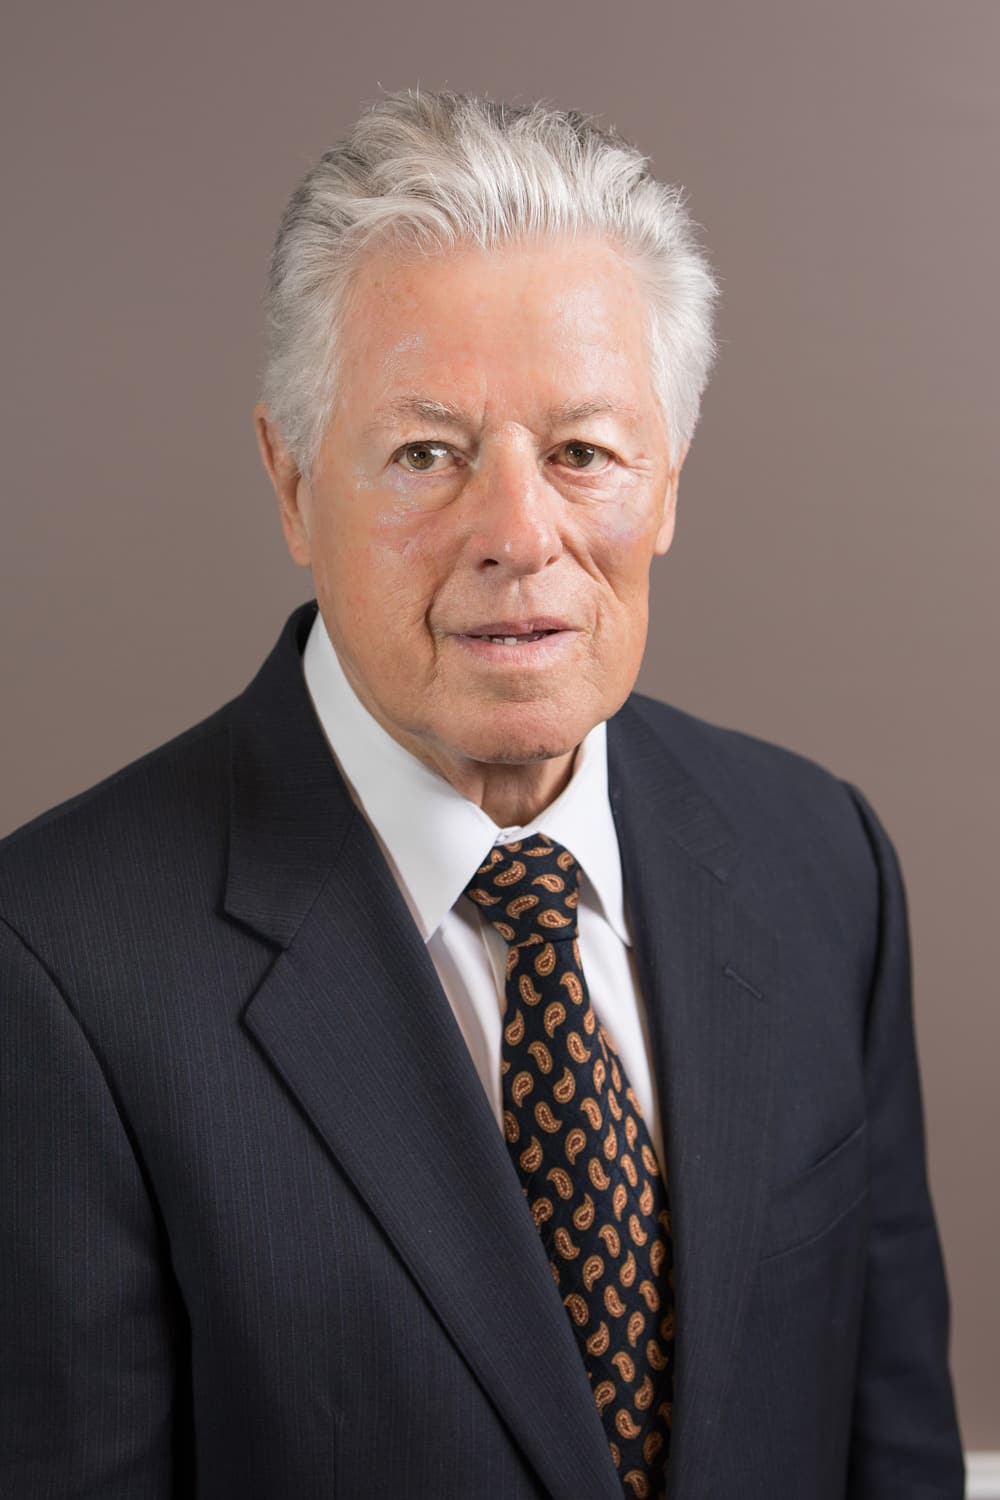 Governor James J. Florio Guest Lectured at the University of Pennsylvania